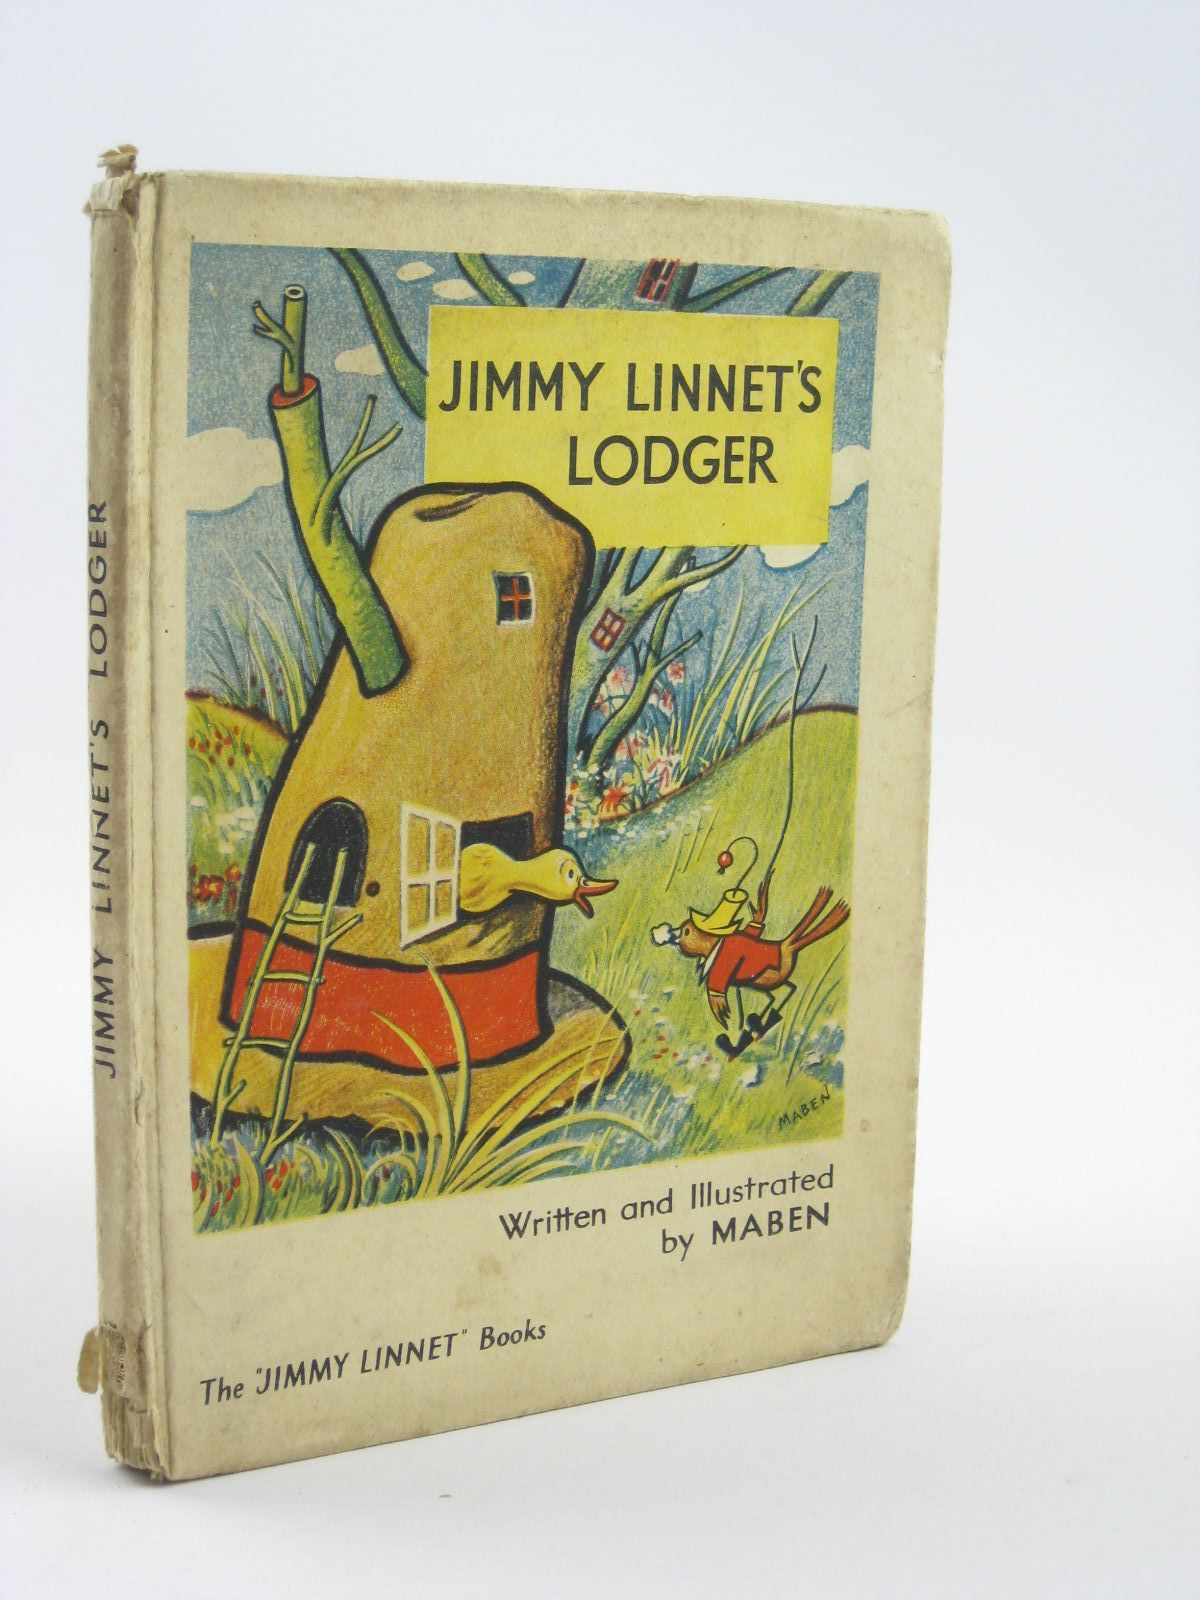 Photo of JIMMY LINNET'S LODGER written by Maben,  illustrated by Maben,  published by Frederick Warne & Co Ltd. (STOCK CODE: 1401671)  for sale by Stella & Rose's Books